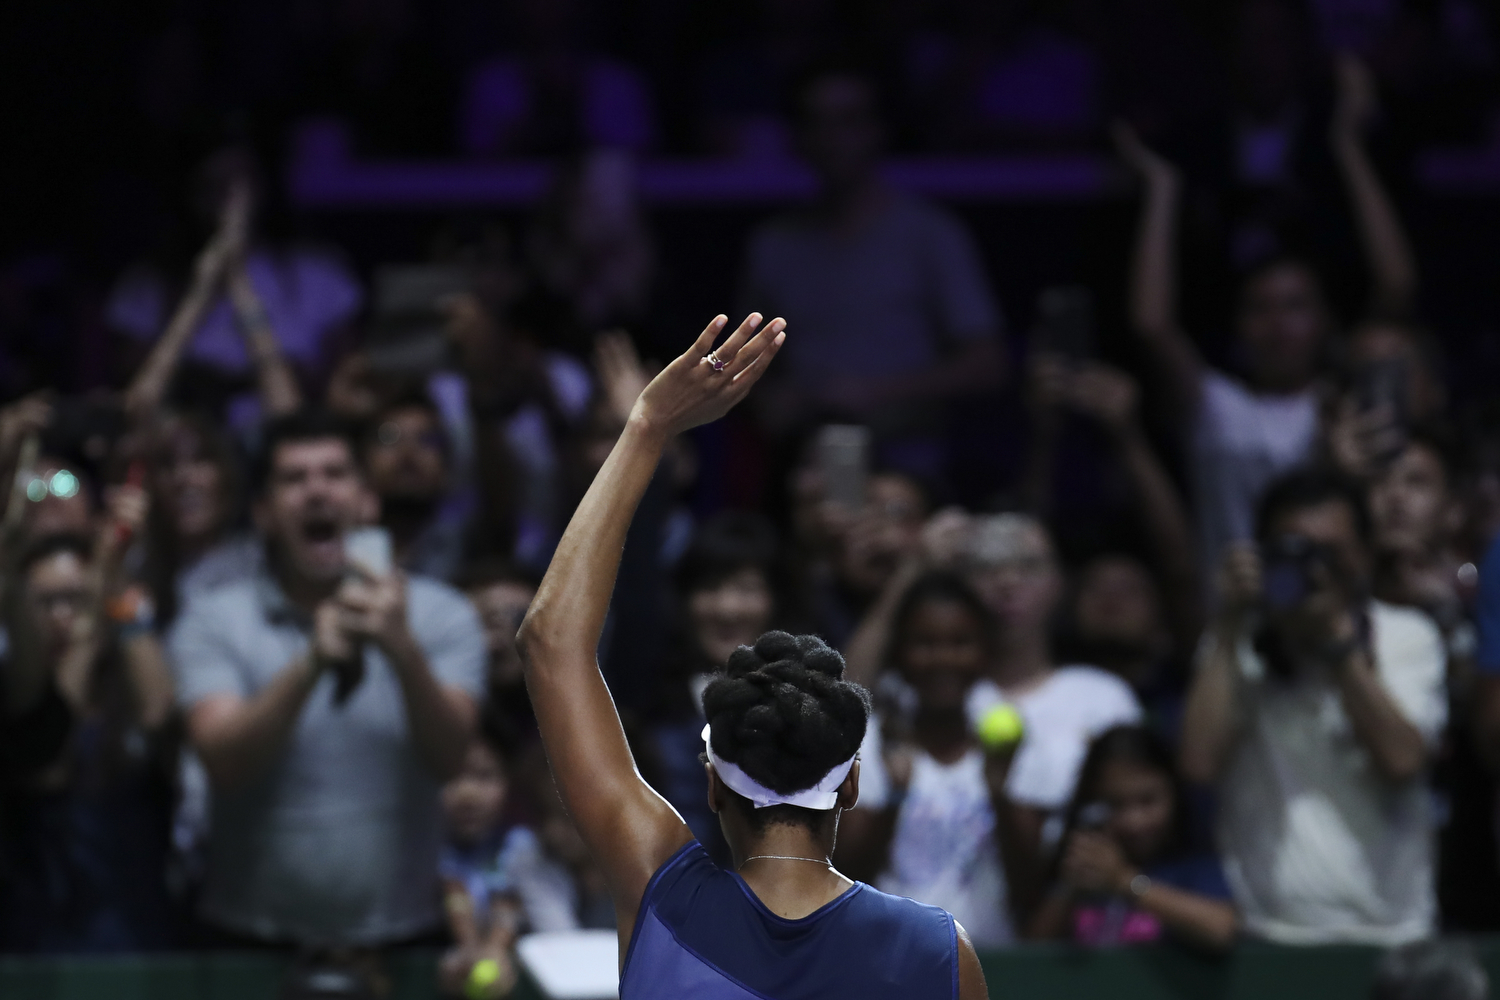 Venus Williams of the United States celebrates after beating Caroline Garcia of France during their semifinal match at the WTA tennis tournament in Singapore, on Saturday, Oct. 28, 2017. (AP Photo/Yong Teck Lim)